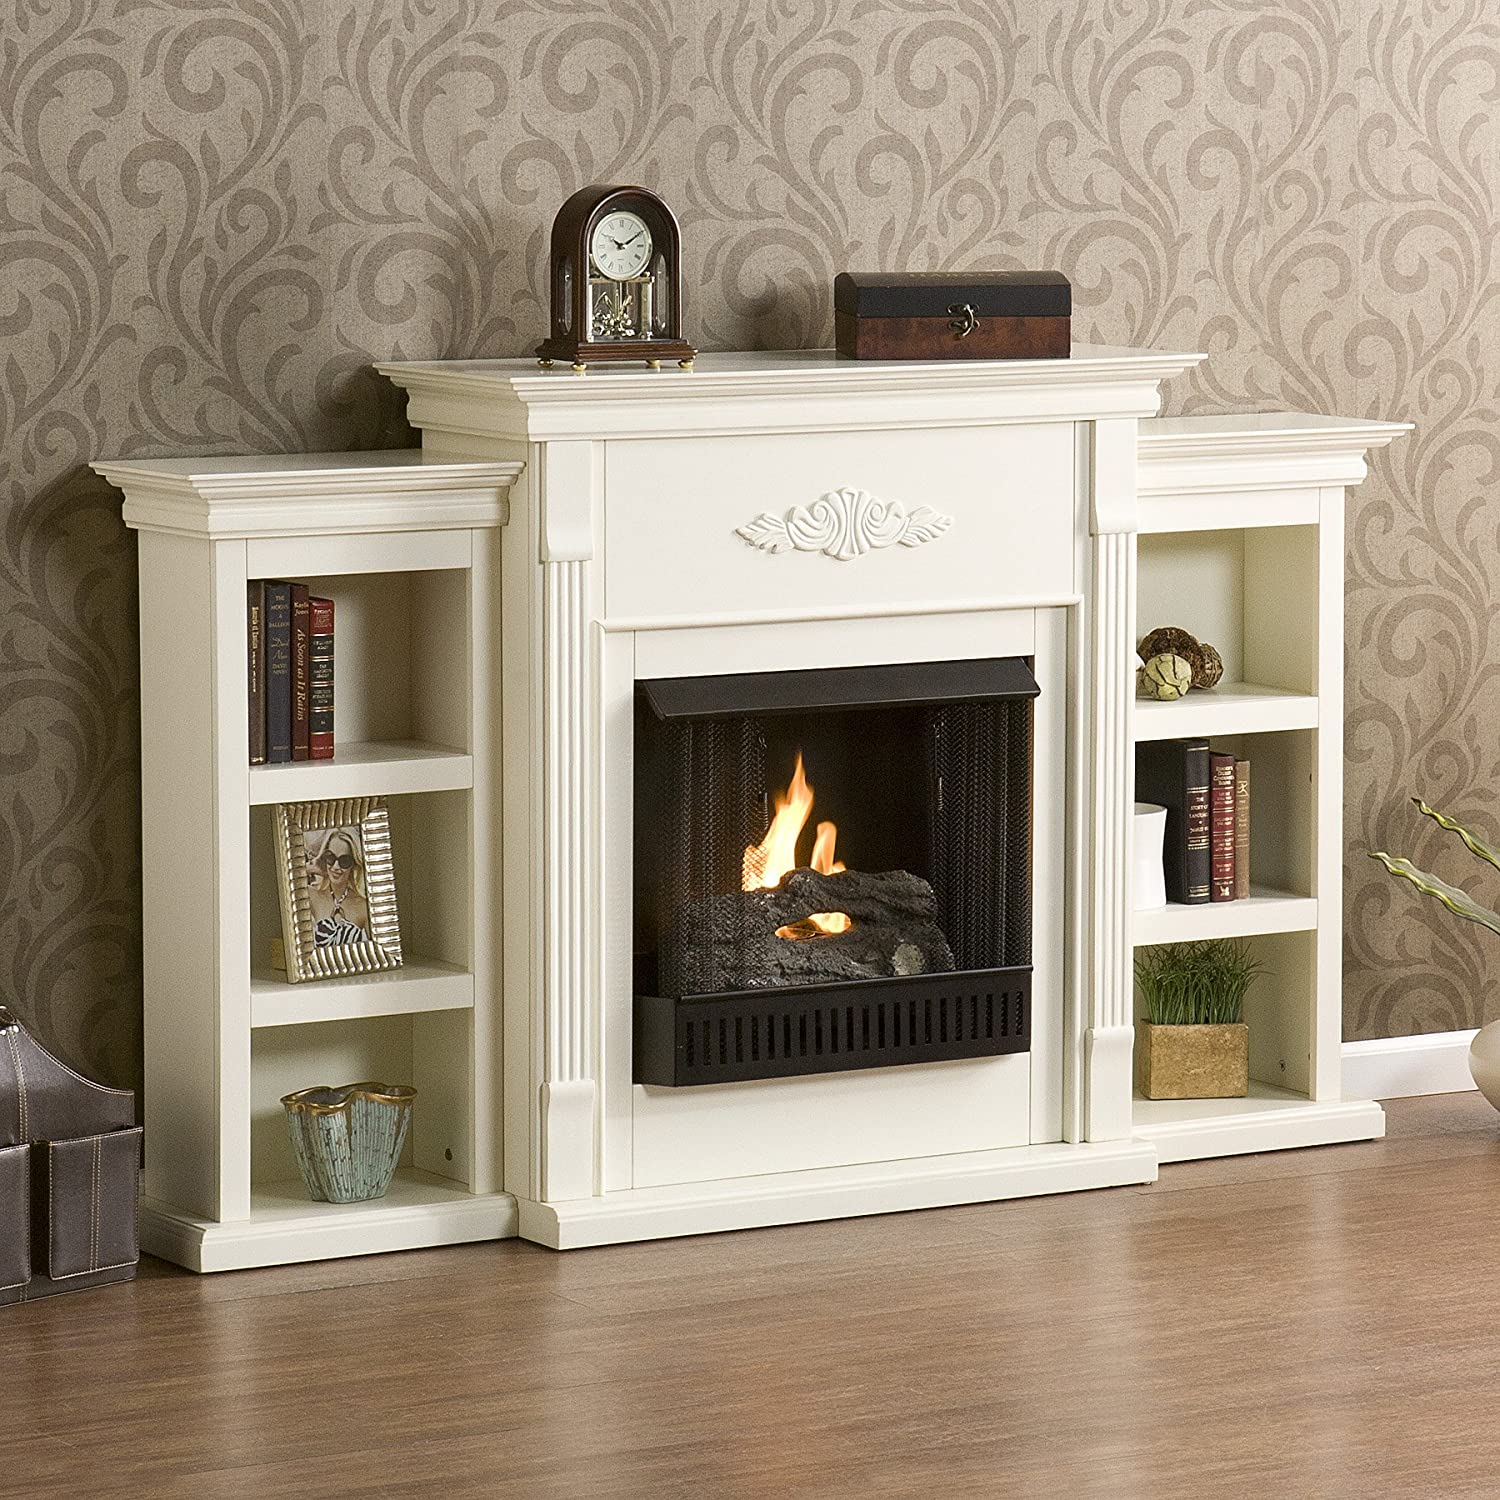 amazon com sei tennyson gel fuel fireplace with bookcases ivory